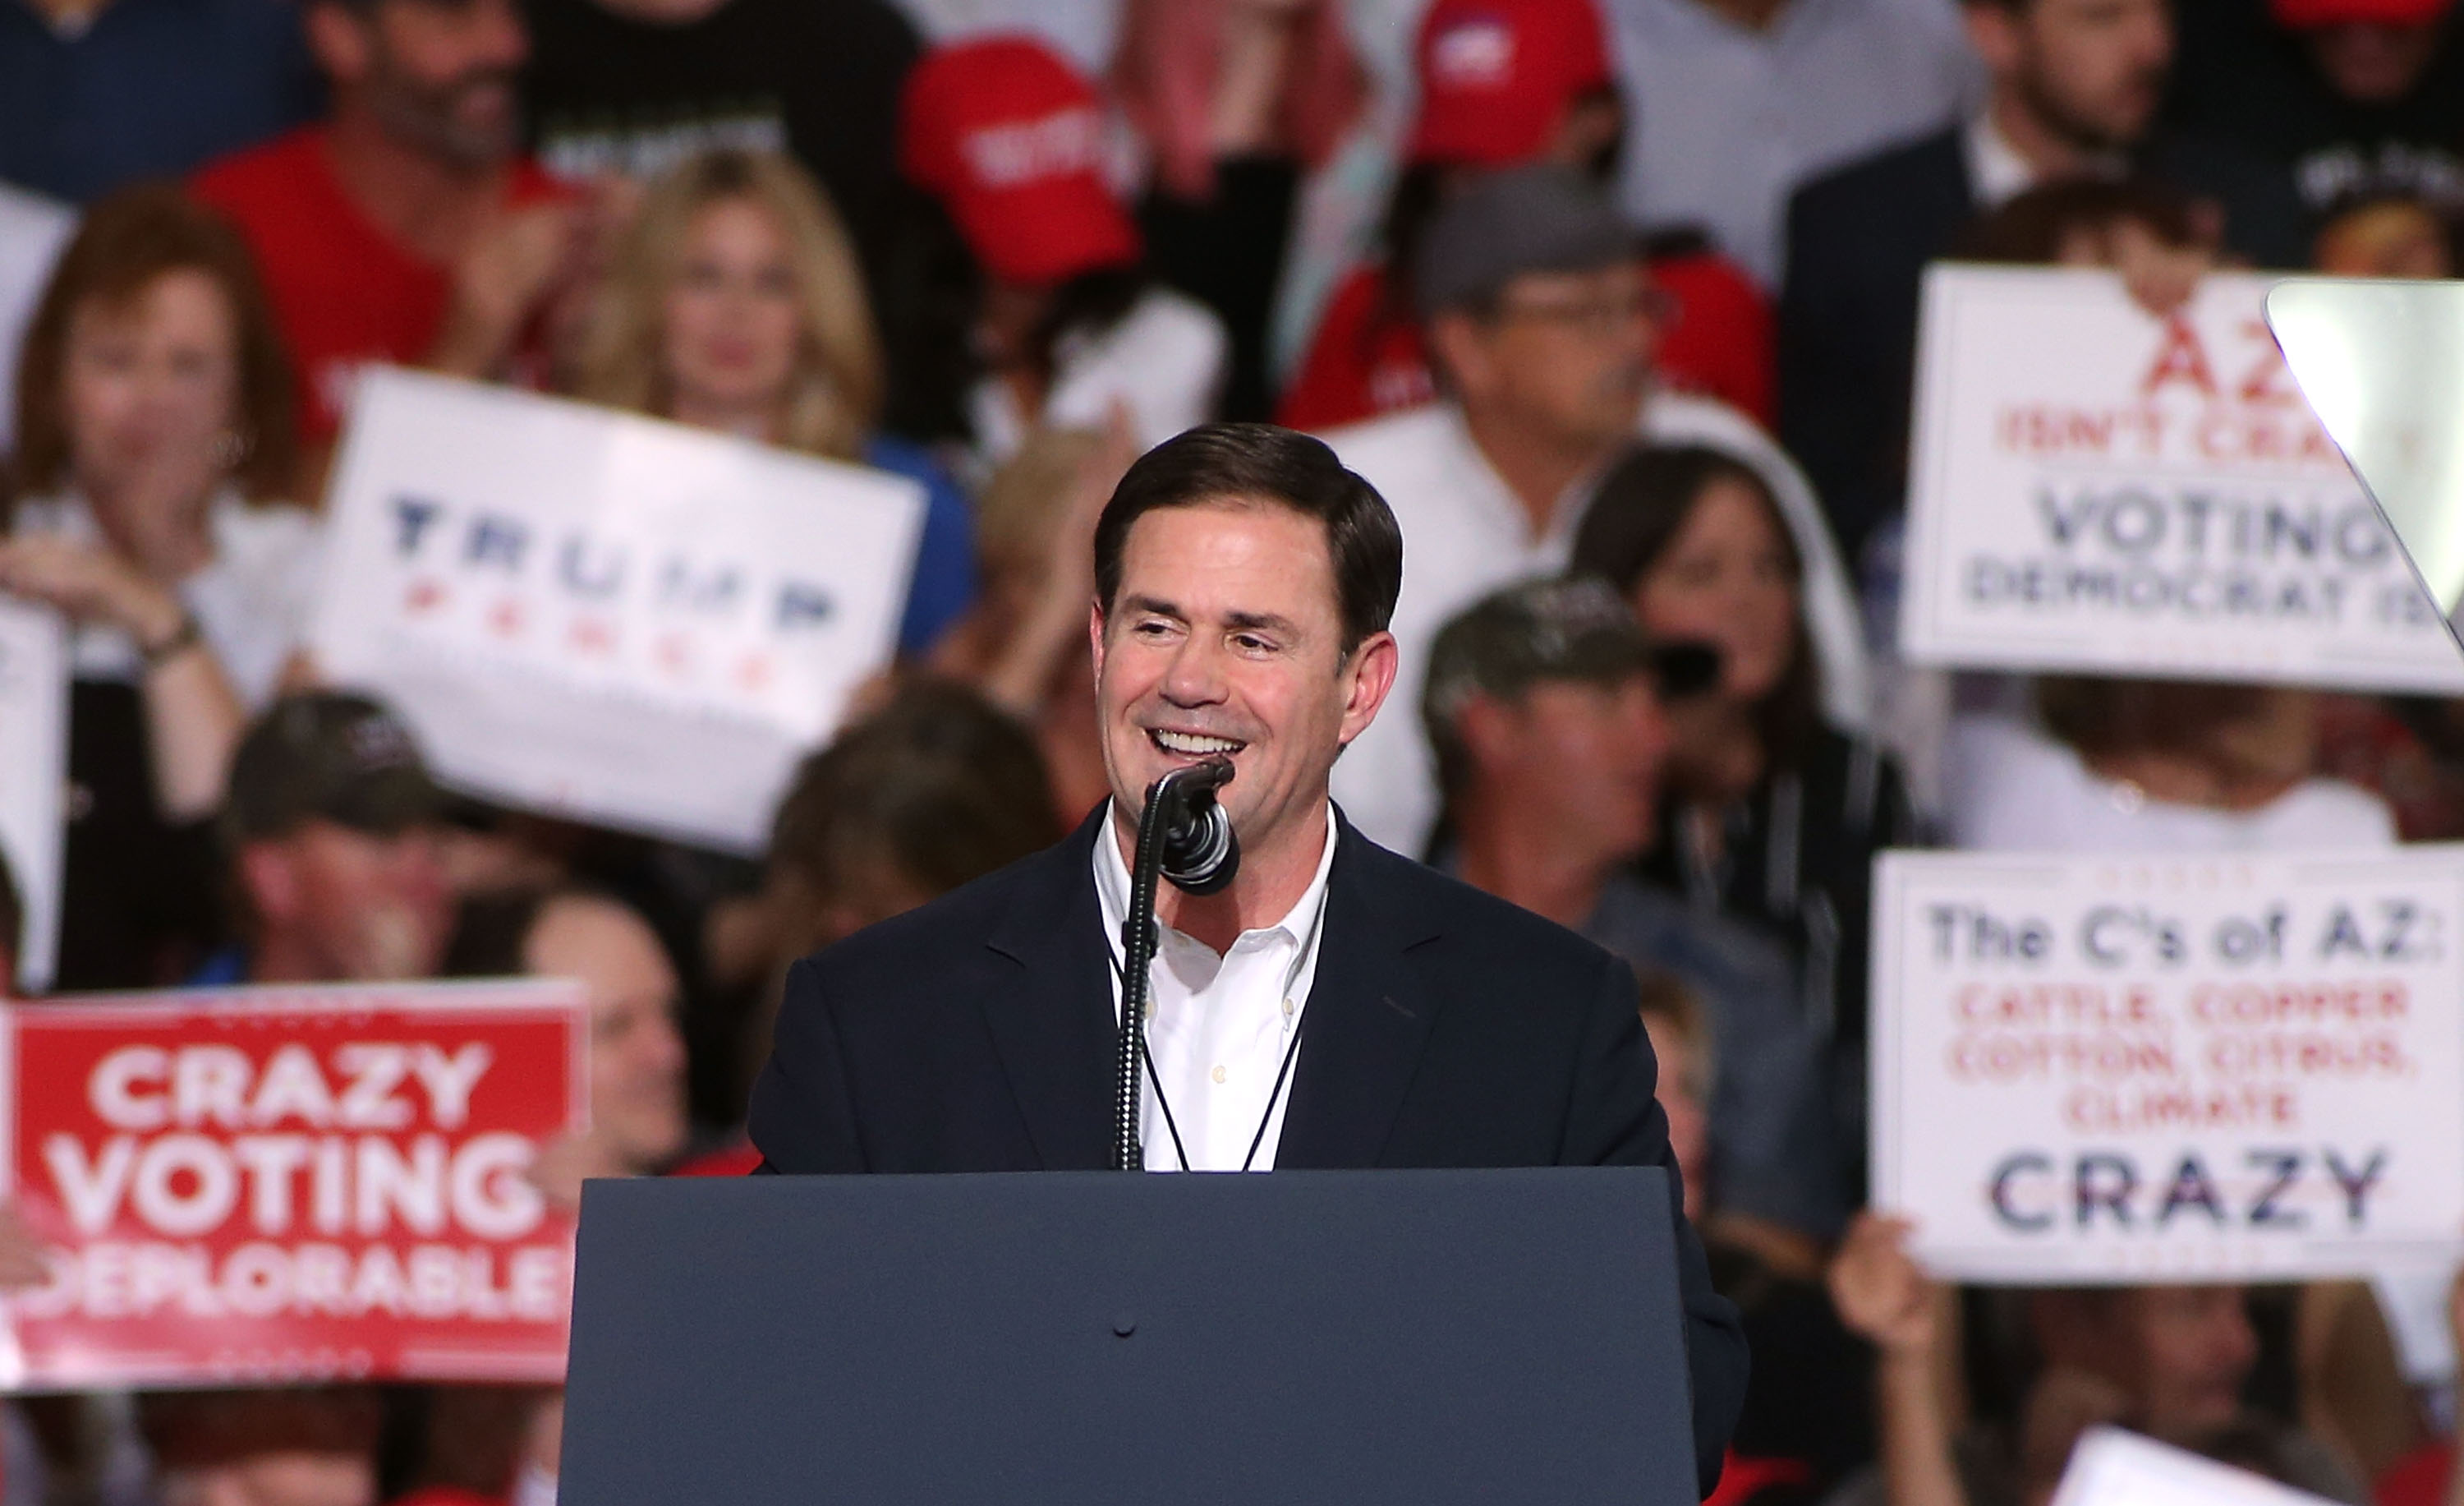 Arizona governor Doug Ducey speaks during a rally for President Donald Trump